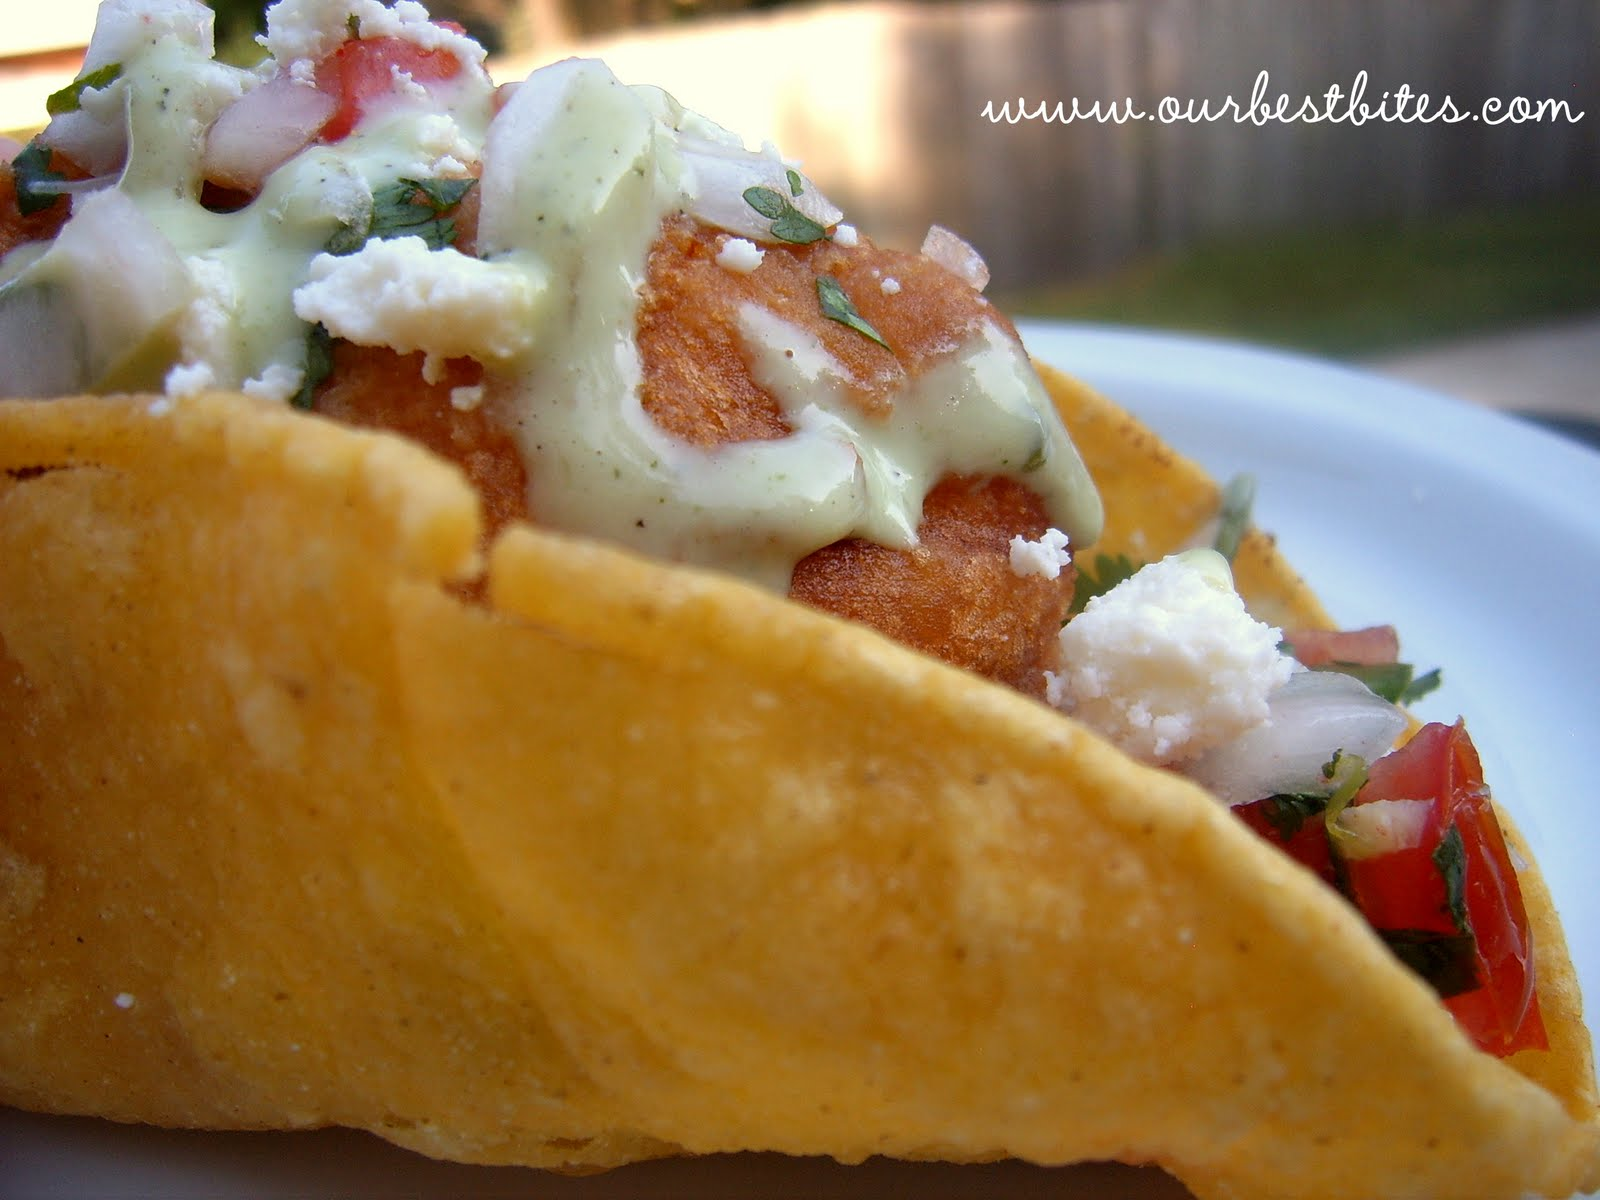 Beer battered fish san diego style fish tacos our best for Beer battered fish tacos recipe